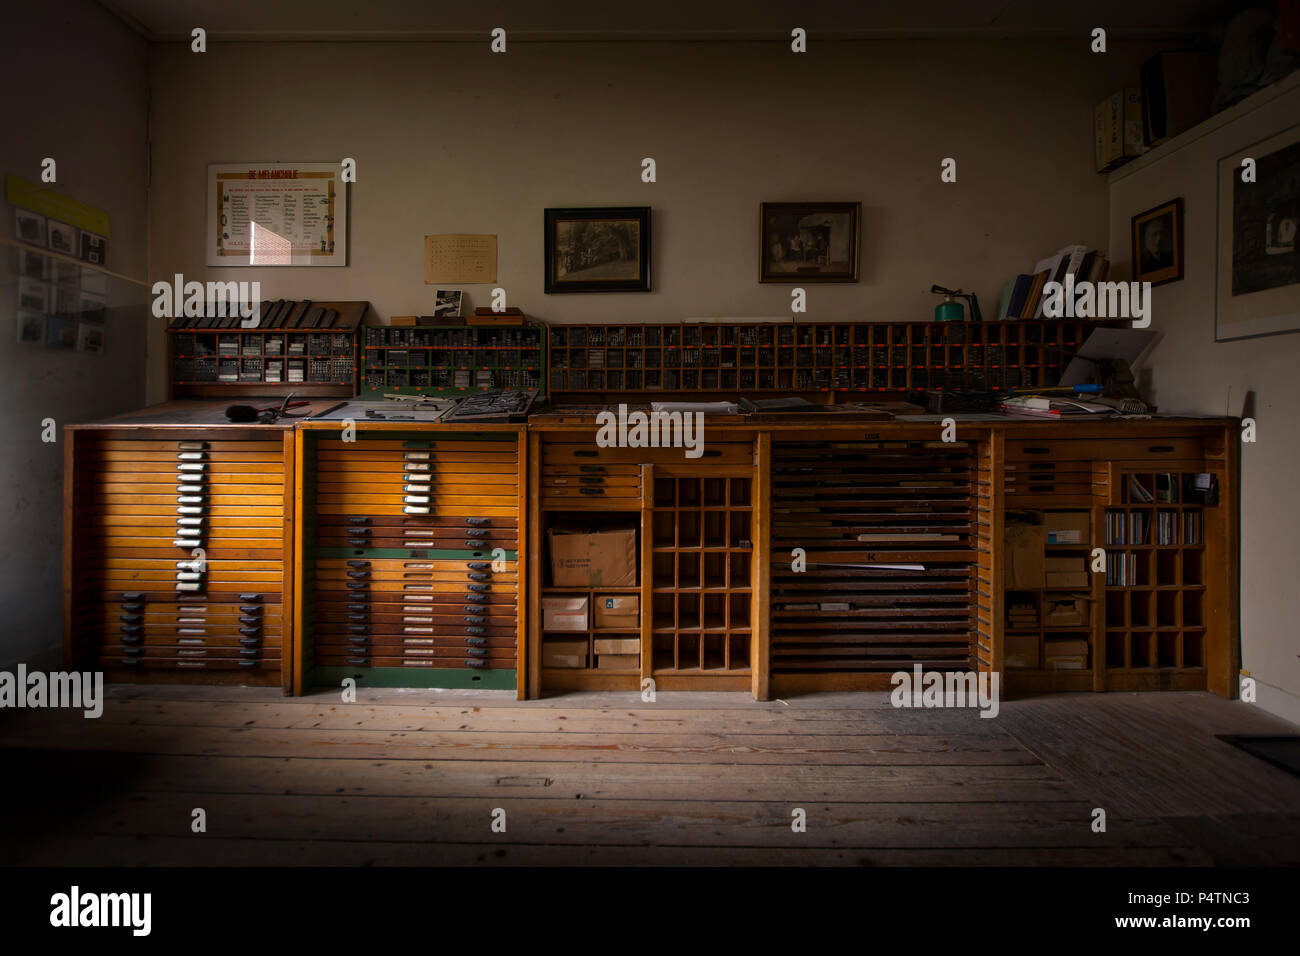 Type case in an old print office lit by one window - Stock Image